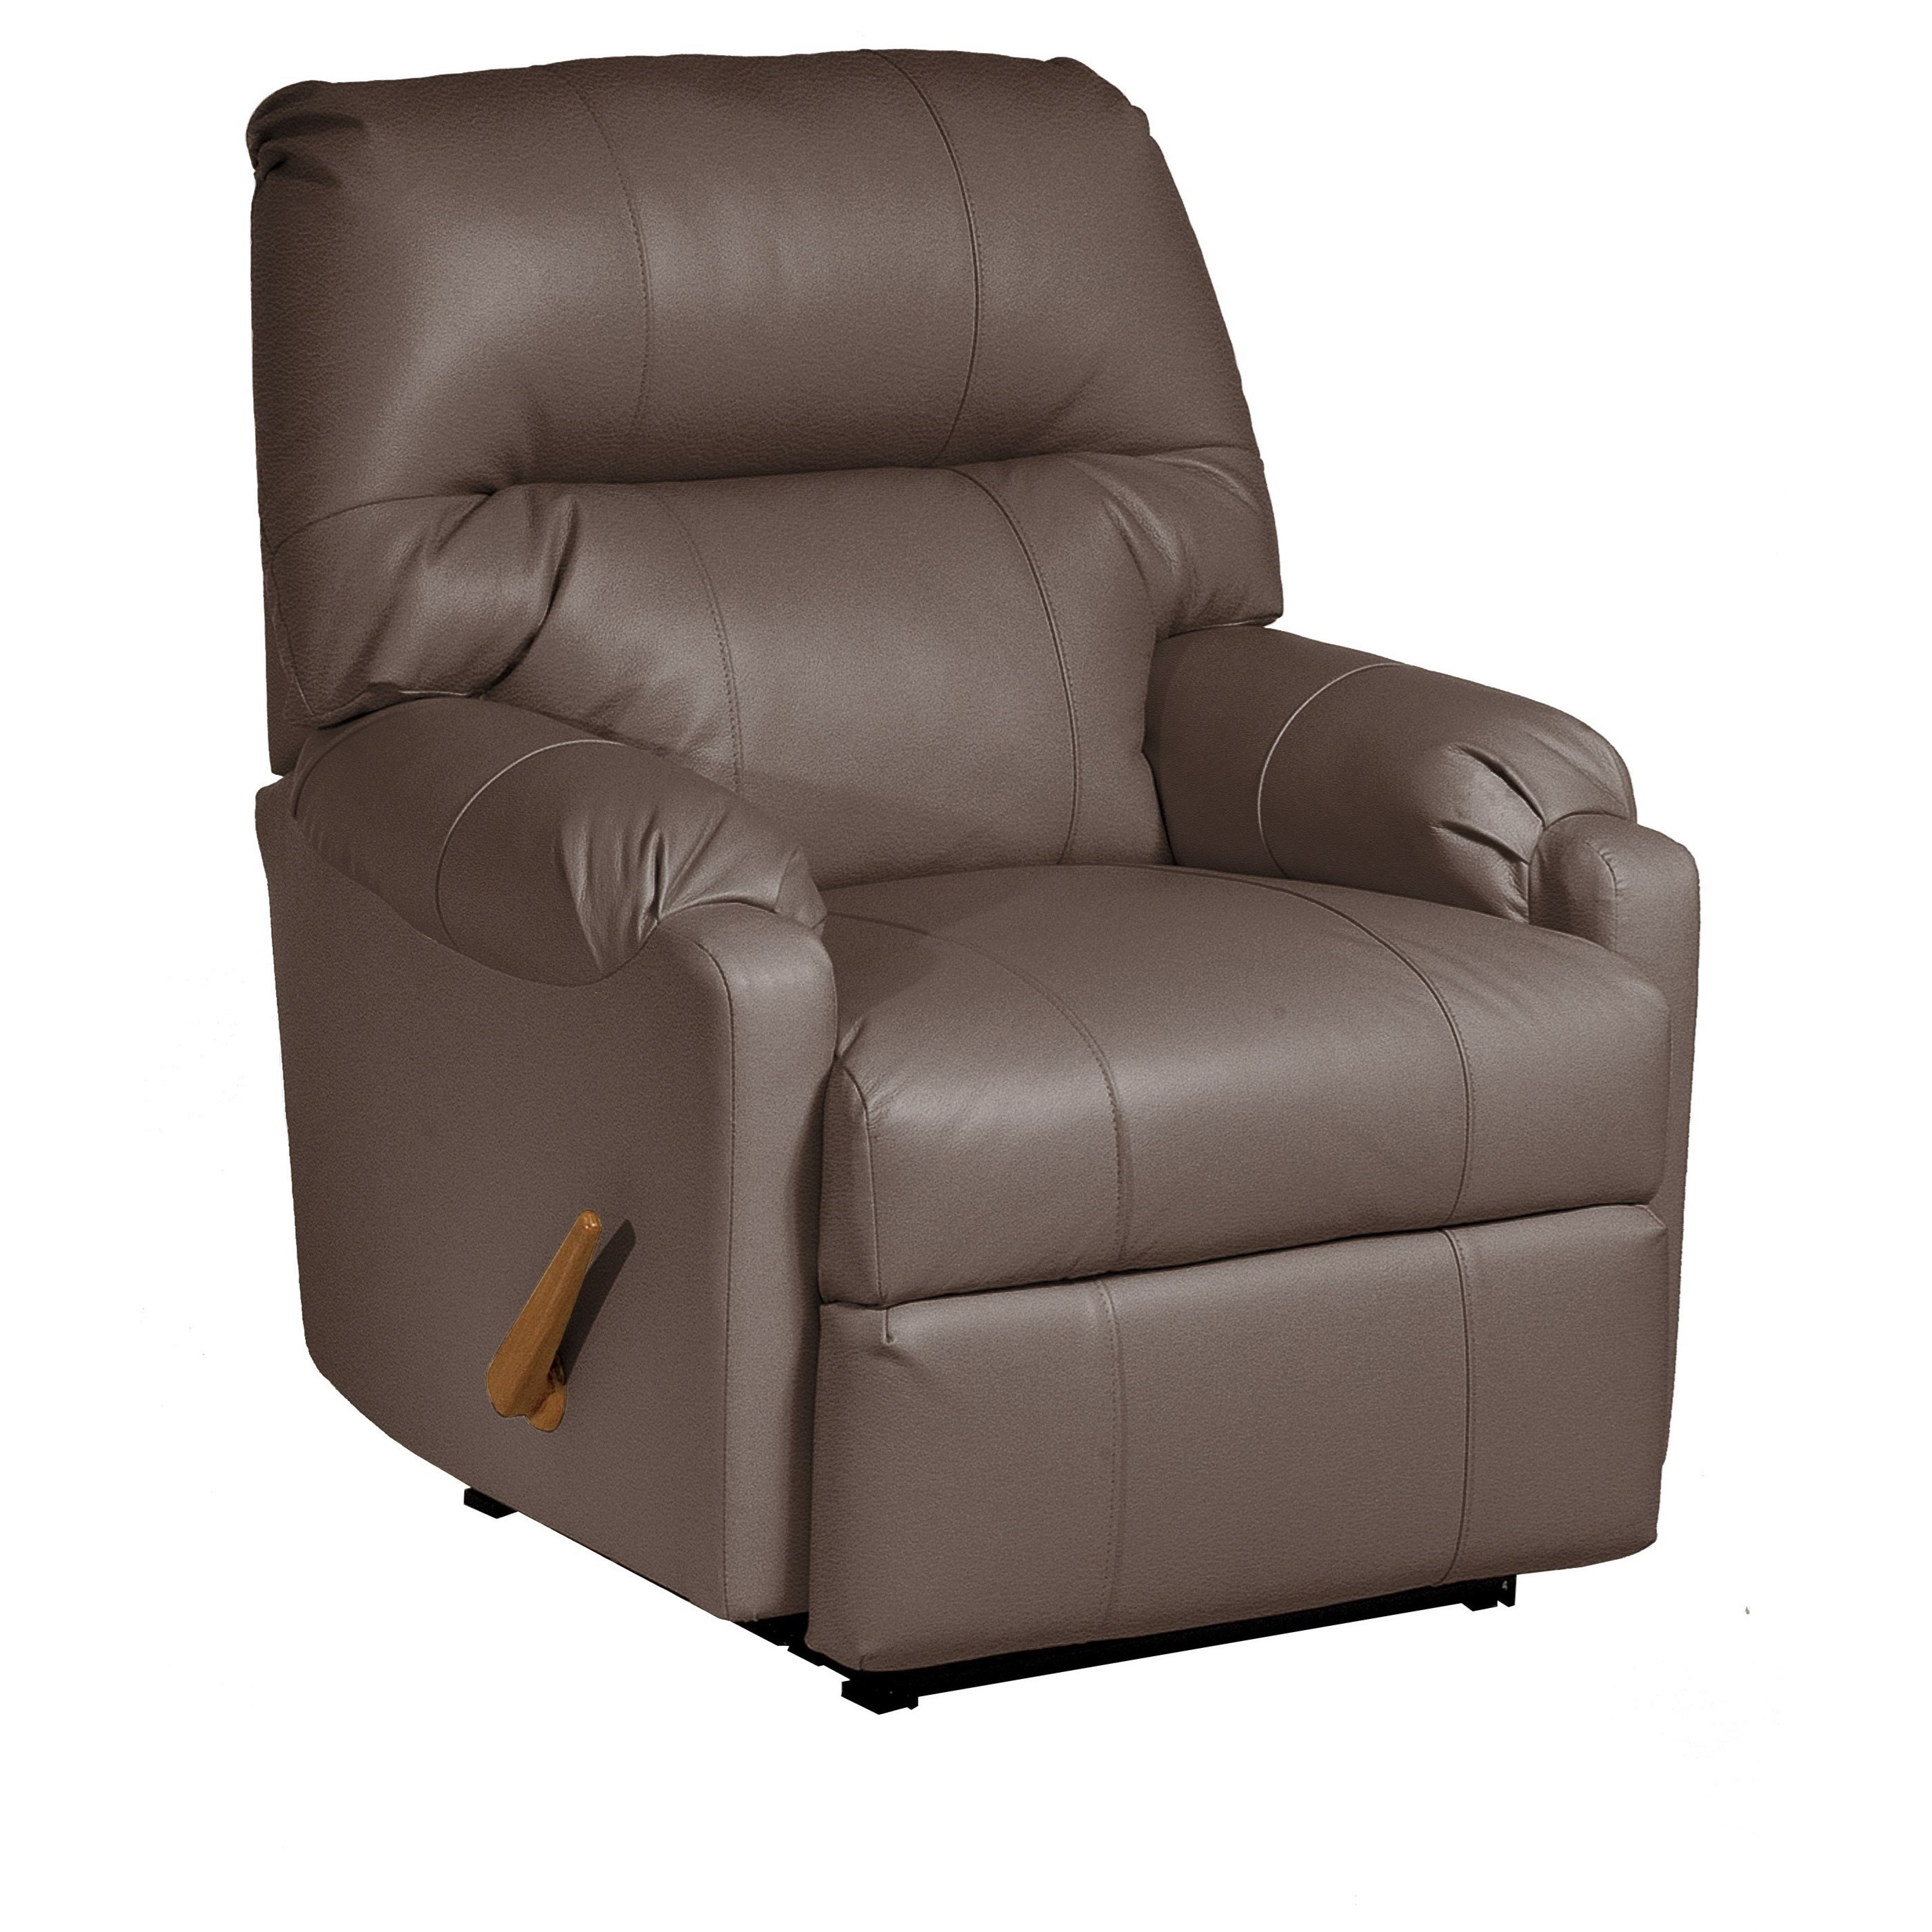 JoJo Power Space Saver Recliner by Best Home Furnishings at Lucas Furniture & Mattress